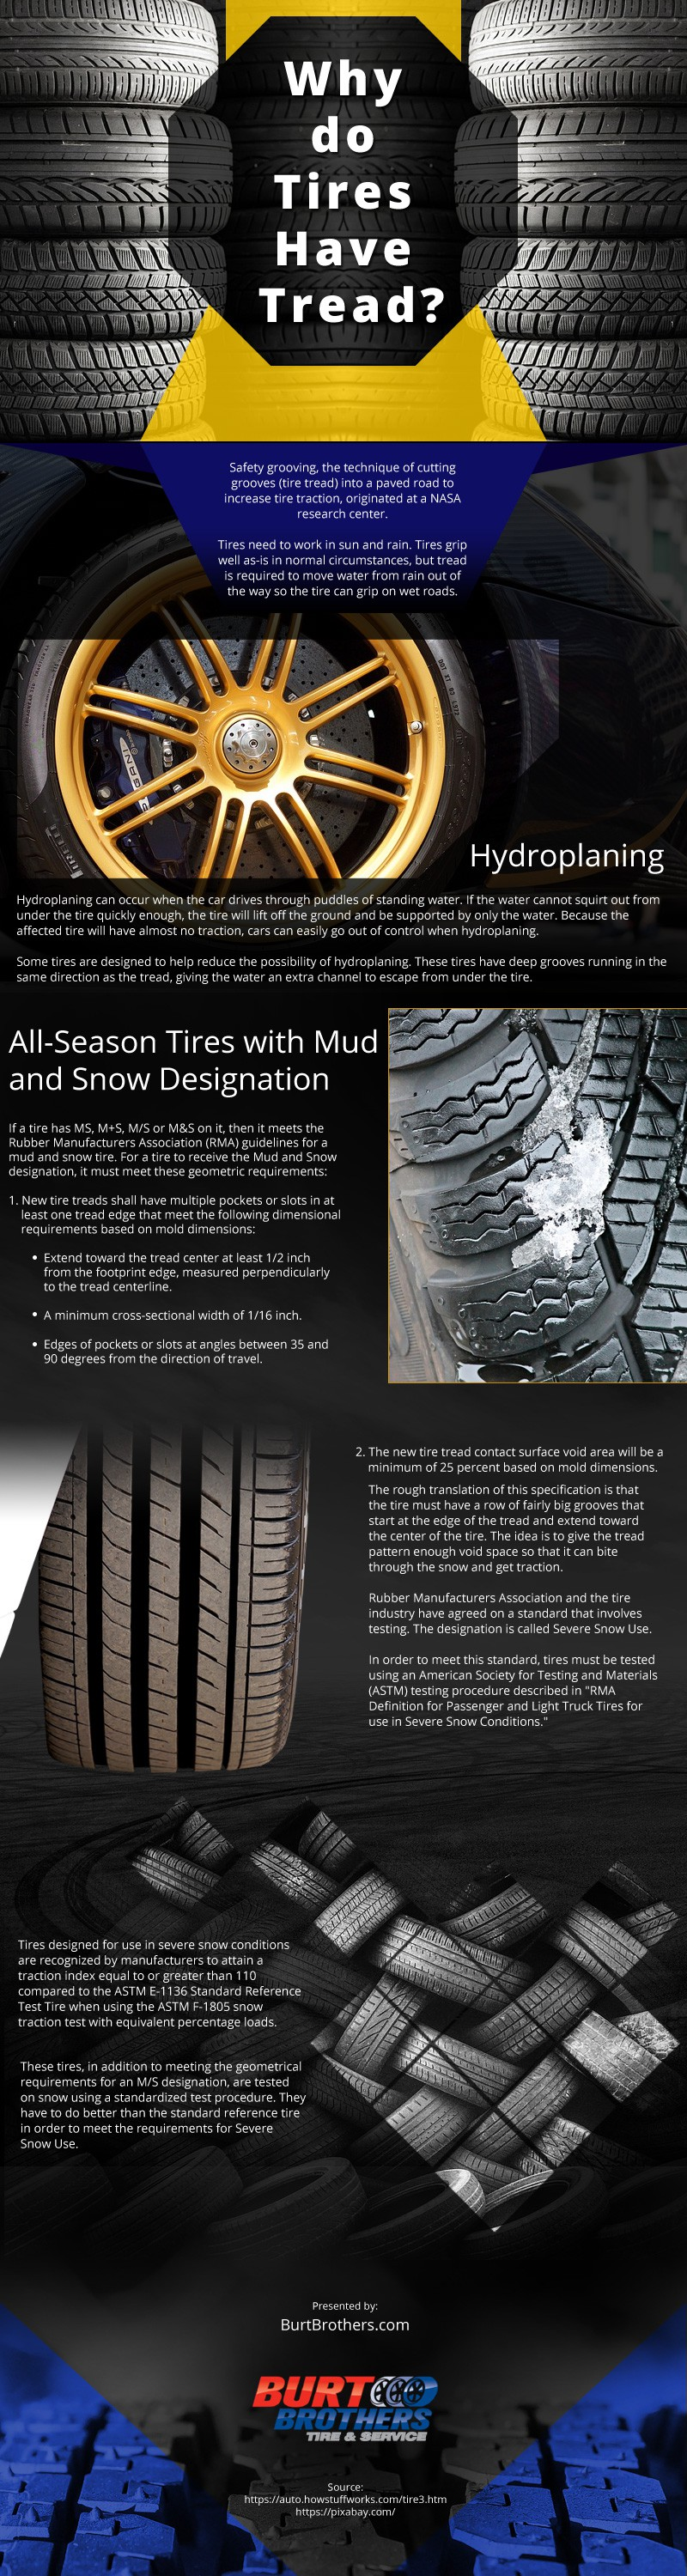 Why-do-Tires-Have-Tread Infographic